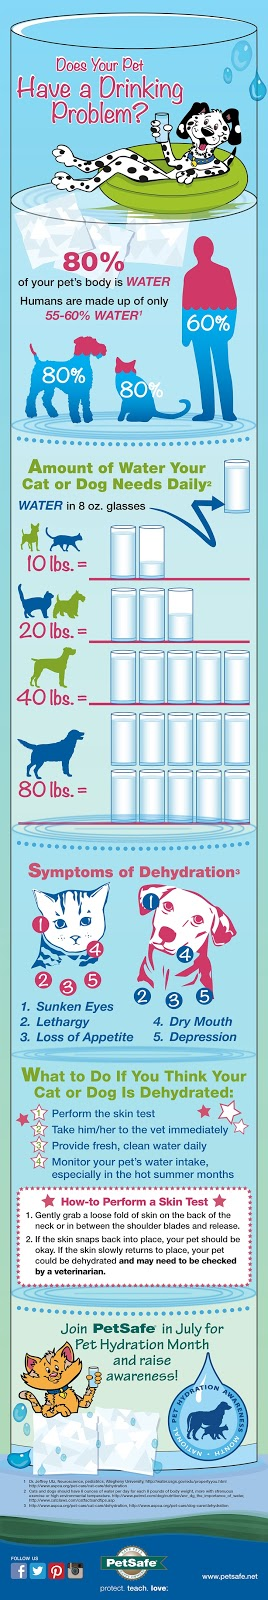 PetSafe Pet Hydration Month Infographic